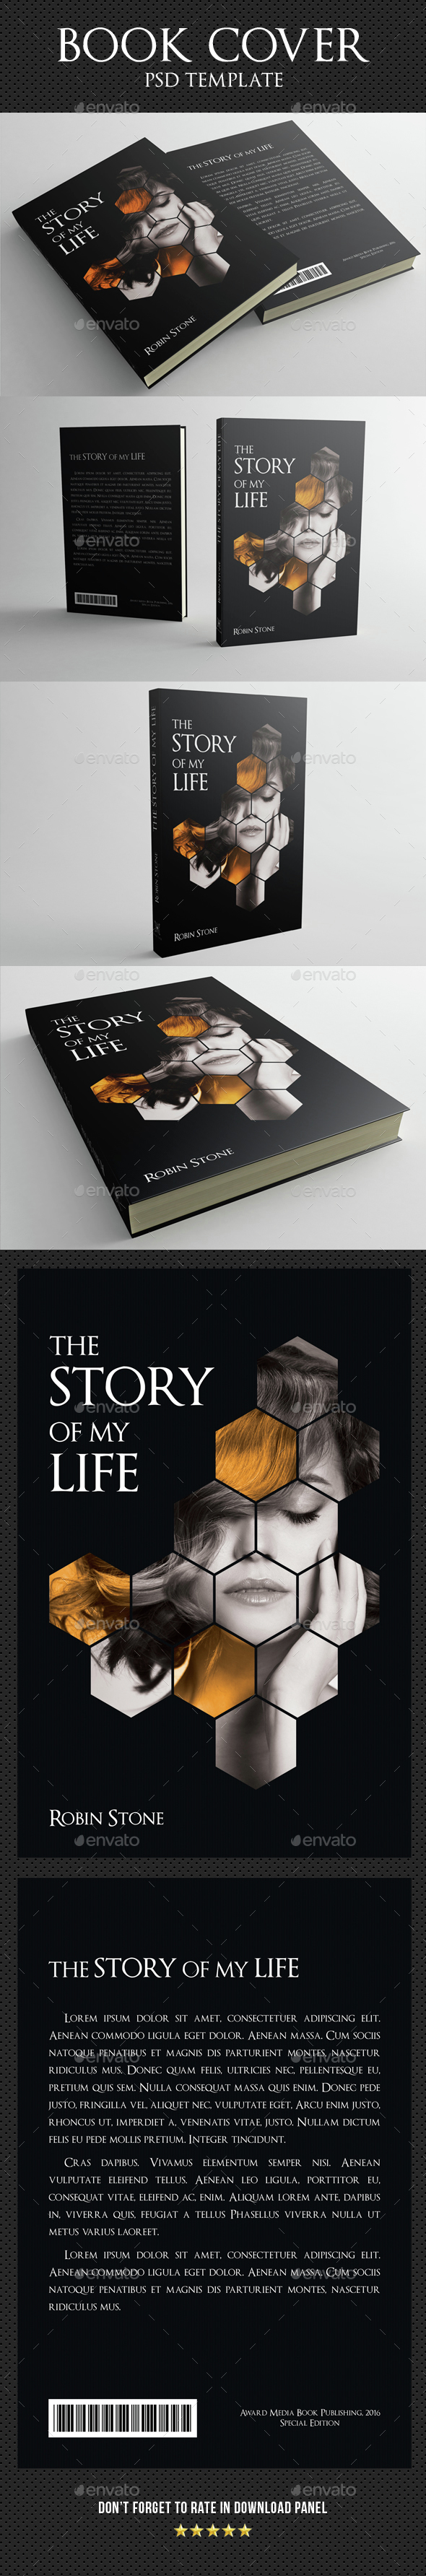 Book Cover Template 02 - Miscellaneous Print Templates